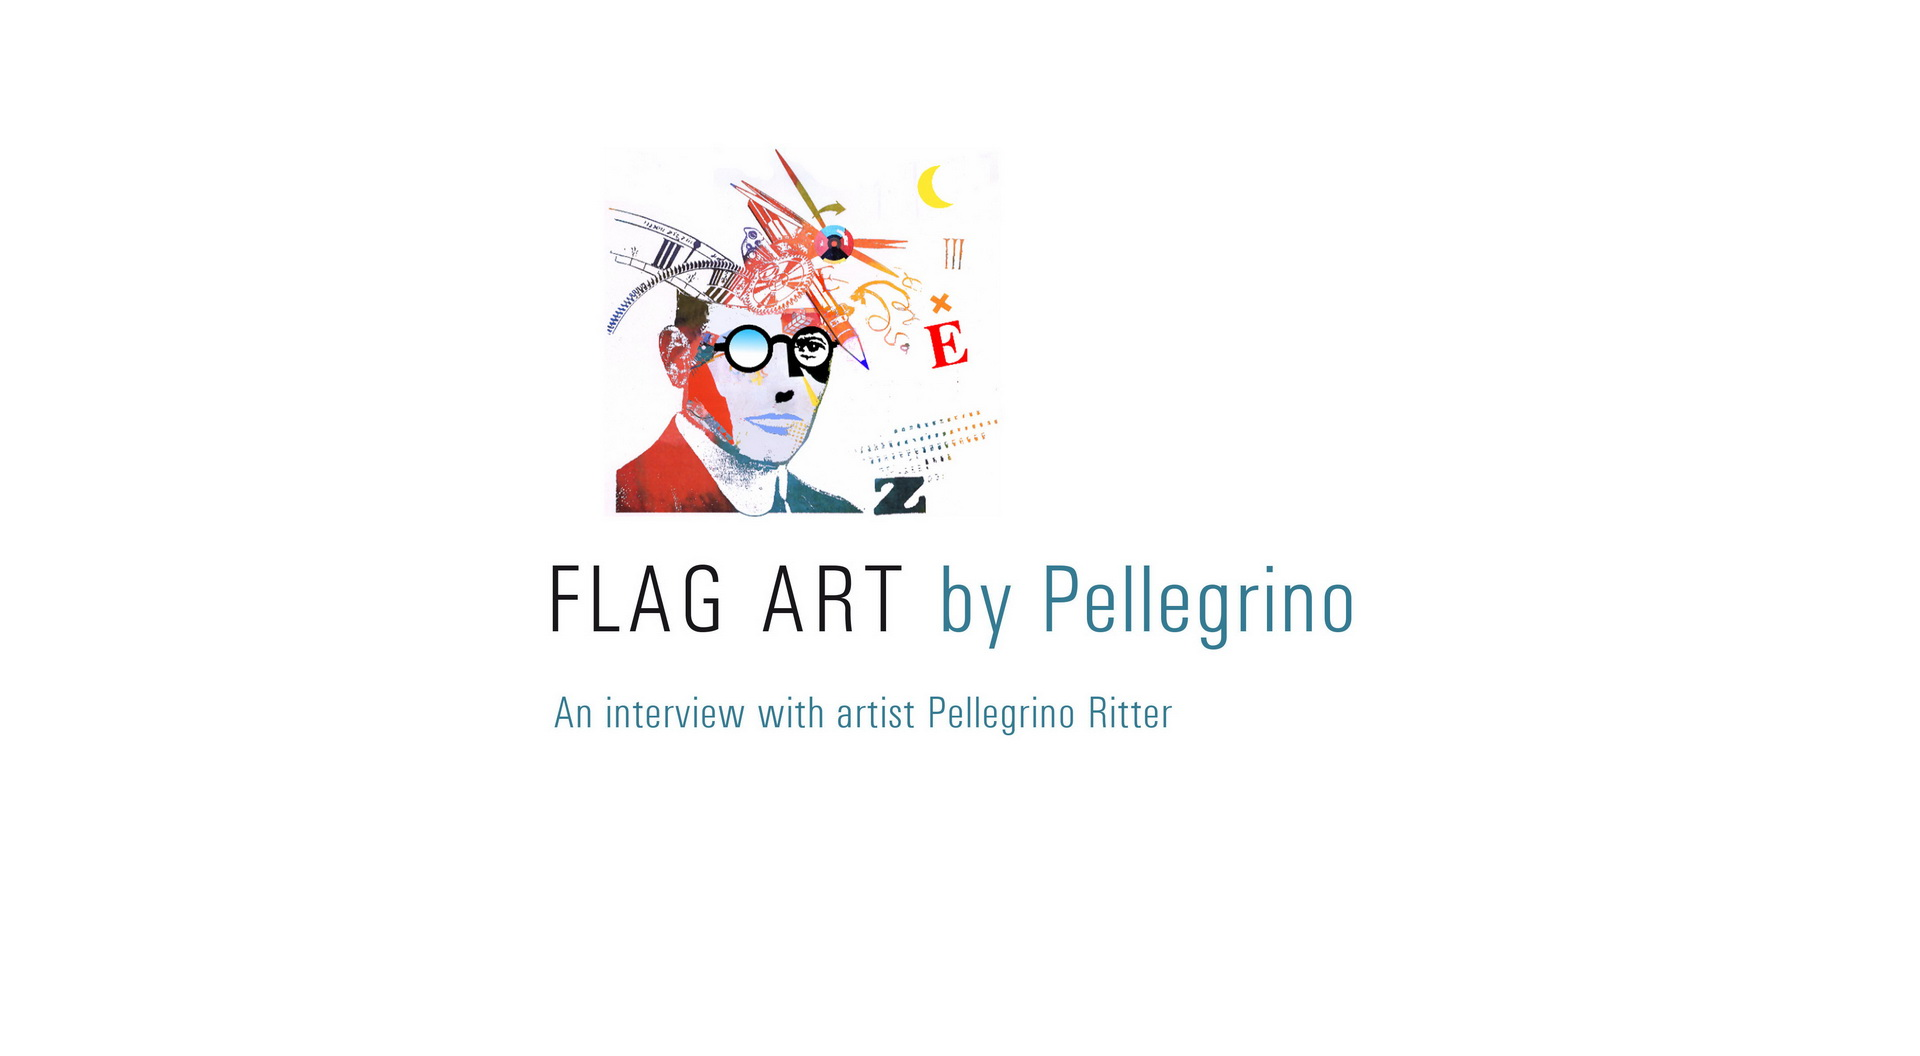 Pellegrino-flagart-1920air03